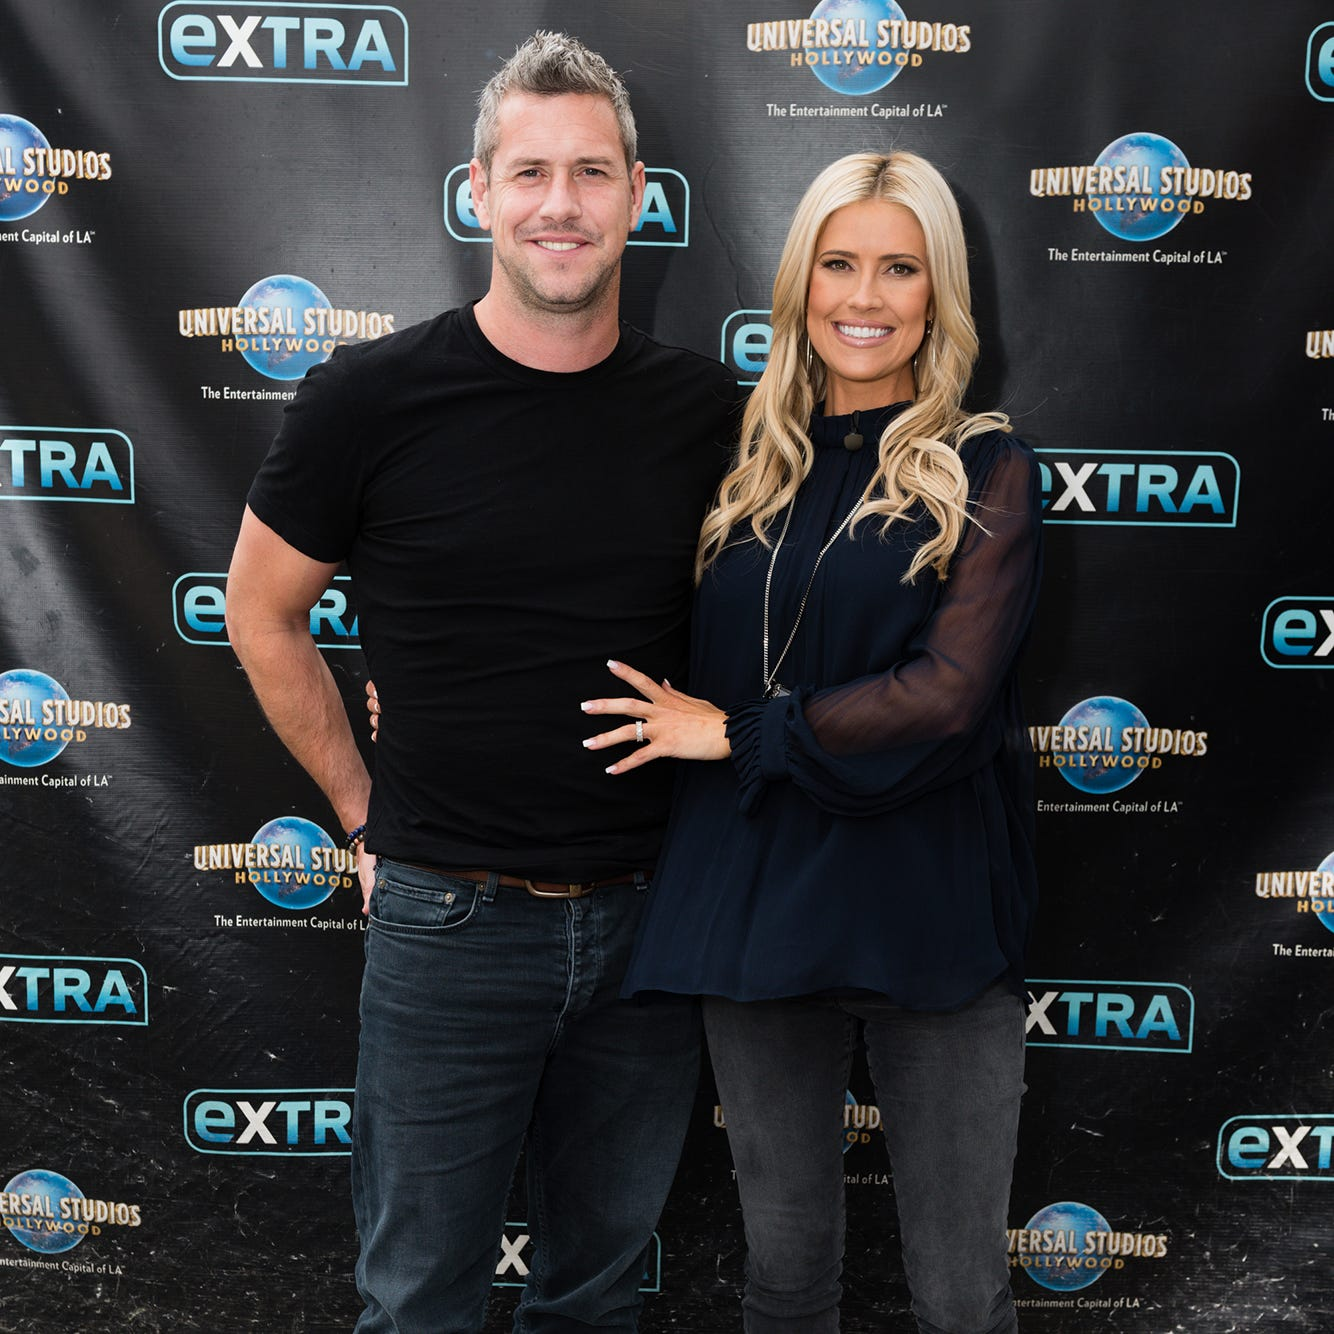 """UNIVERSAL CITY, CALIFORNIA - MAY 22: Christina Anstead and Ant Anstead visit """"Extra"""" at Universal Studios Hollywood on May 22, 2019 in Universal City, California. (Photo by Noel Vasquez/Getty Images)"""